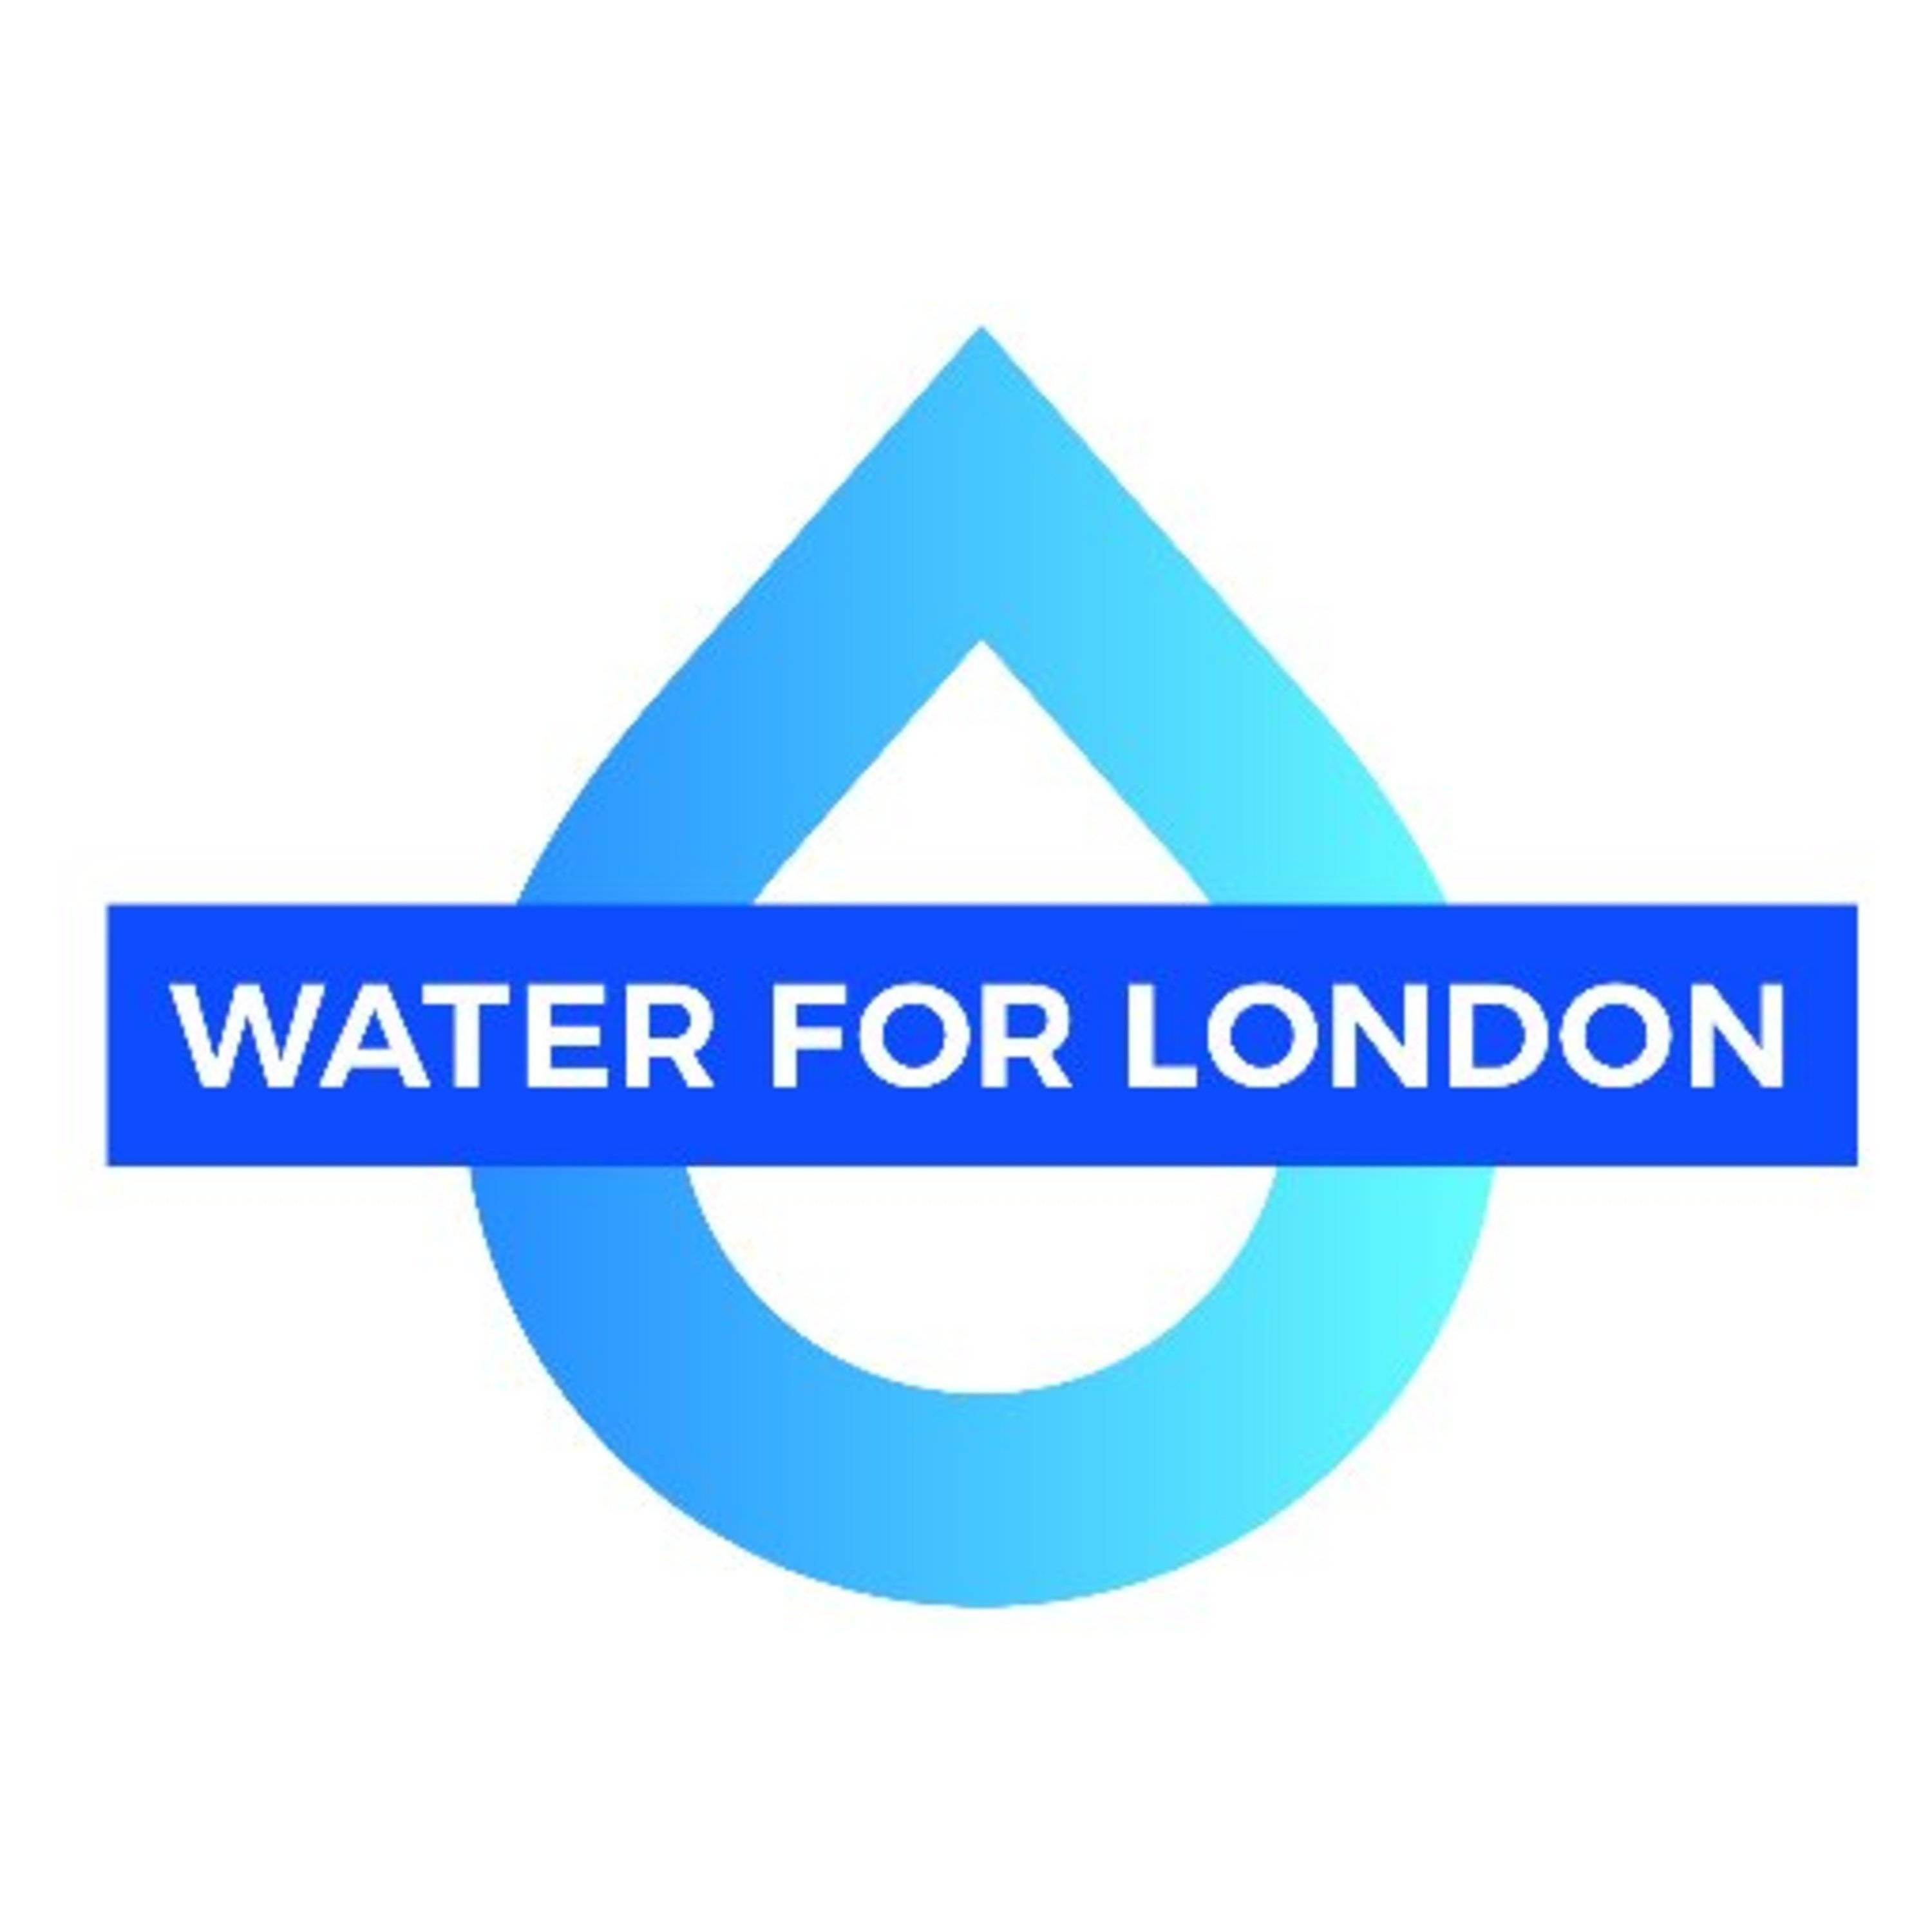 09 - Where's My Water Fountain? - The Problem of Bottled Water - Justine Rose, Water For London